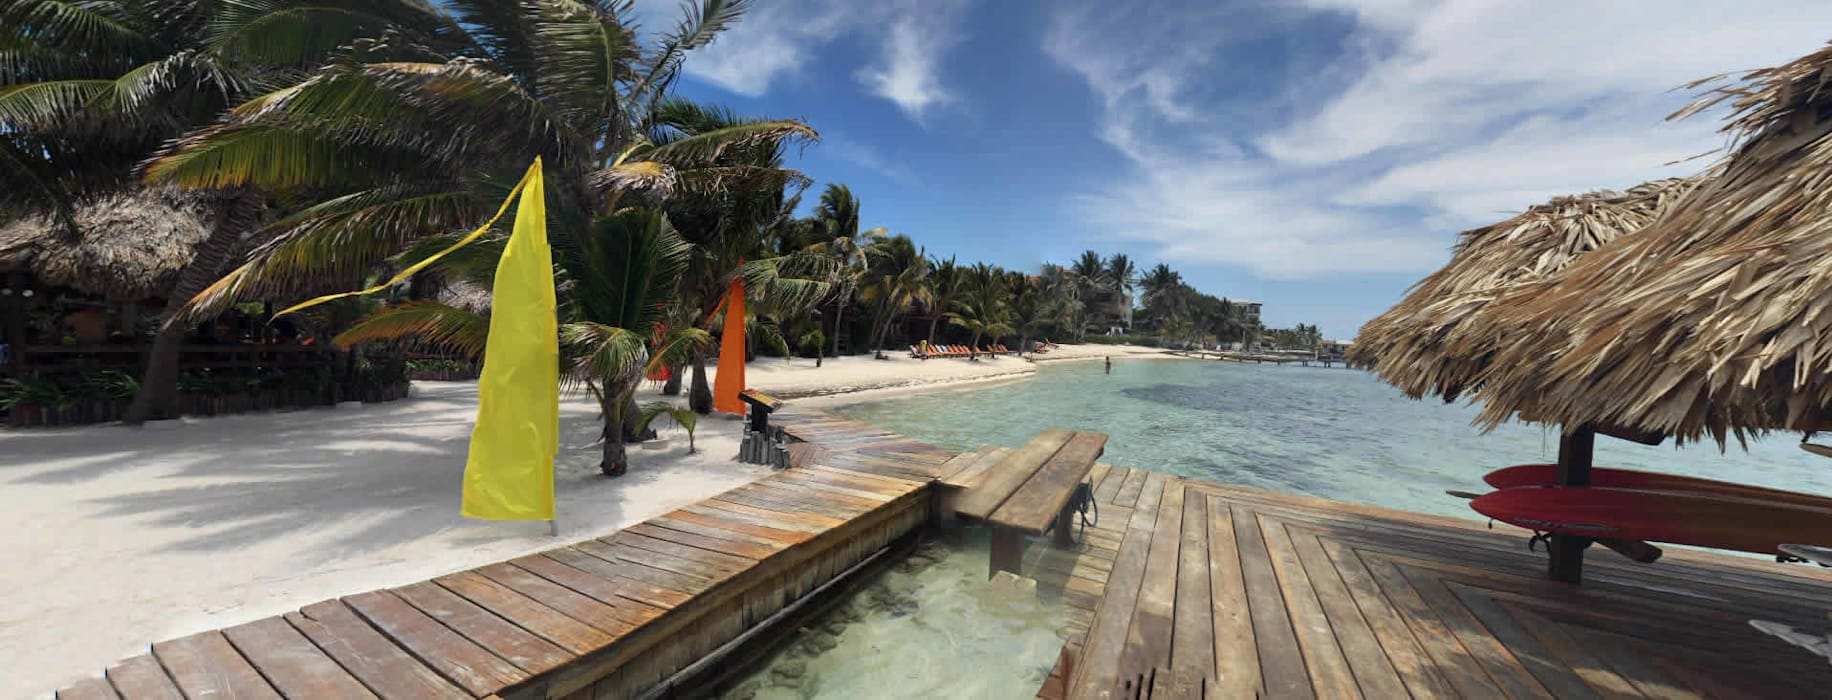 Ambergris Caye LX Belize Real Estate Terrace house